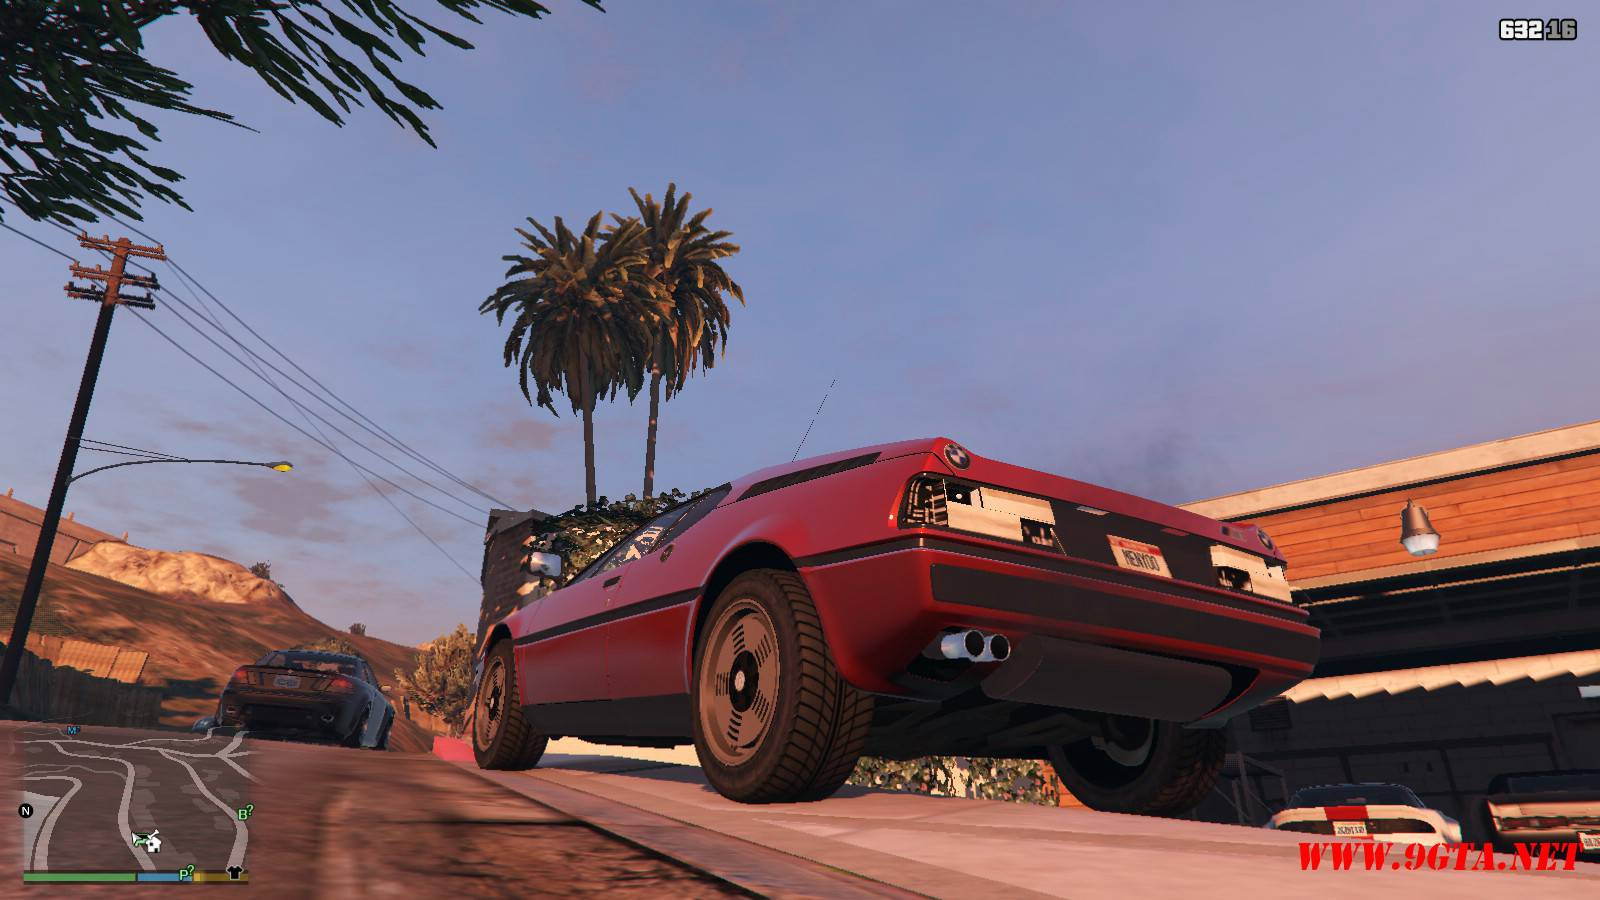 1981 BMW M1 v2.0 Mod For GTA5 (16)